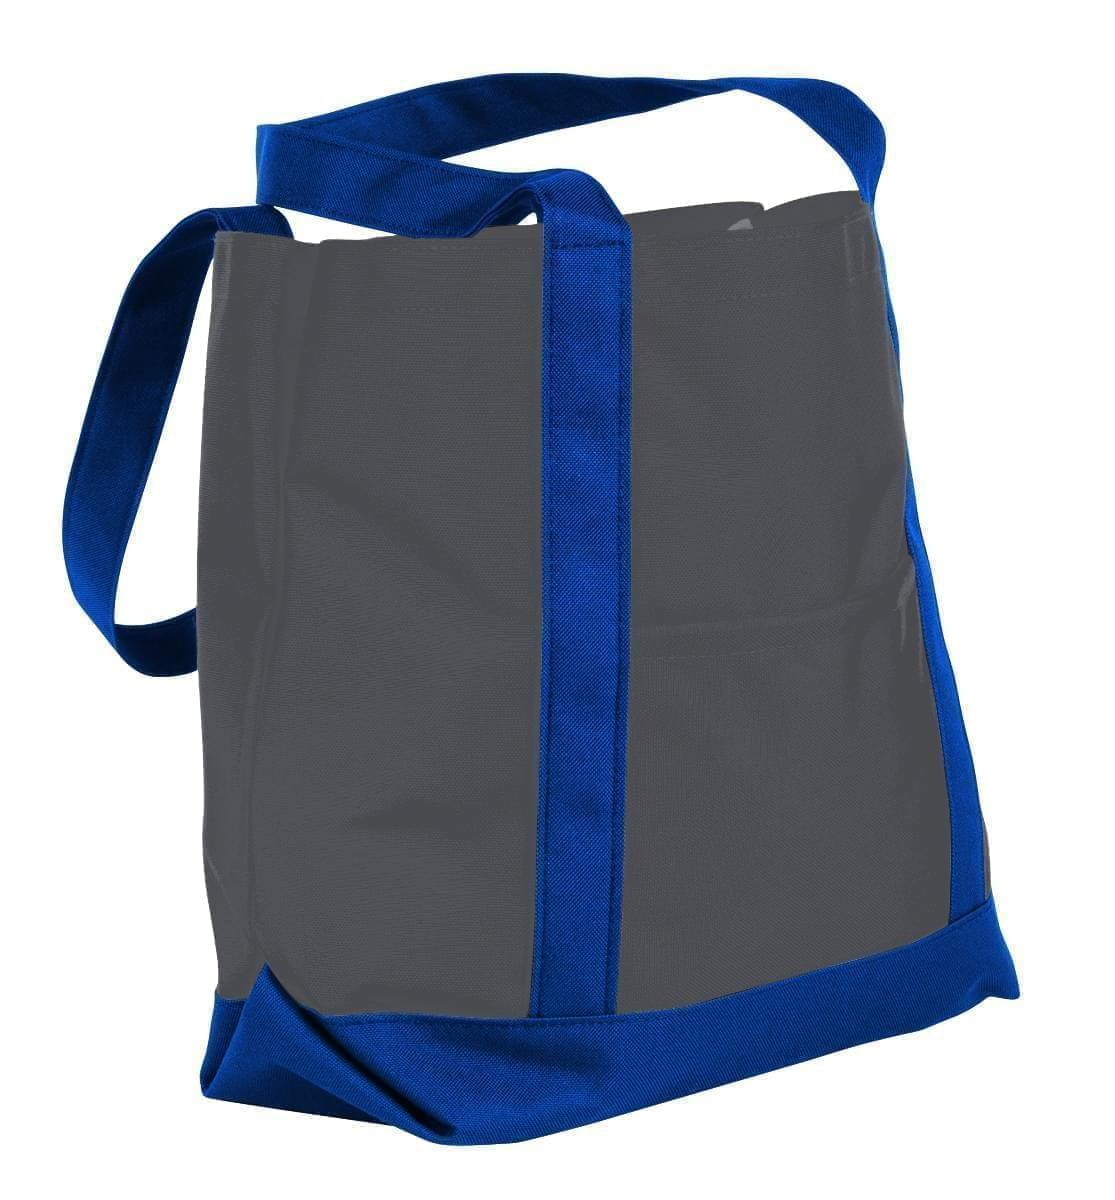 USA Made Nylon Poly Boat Tote Bags, Graphite-Royal Blue, XAACL1UARM